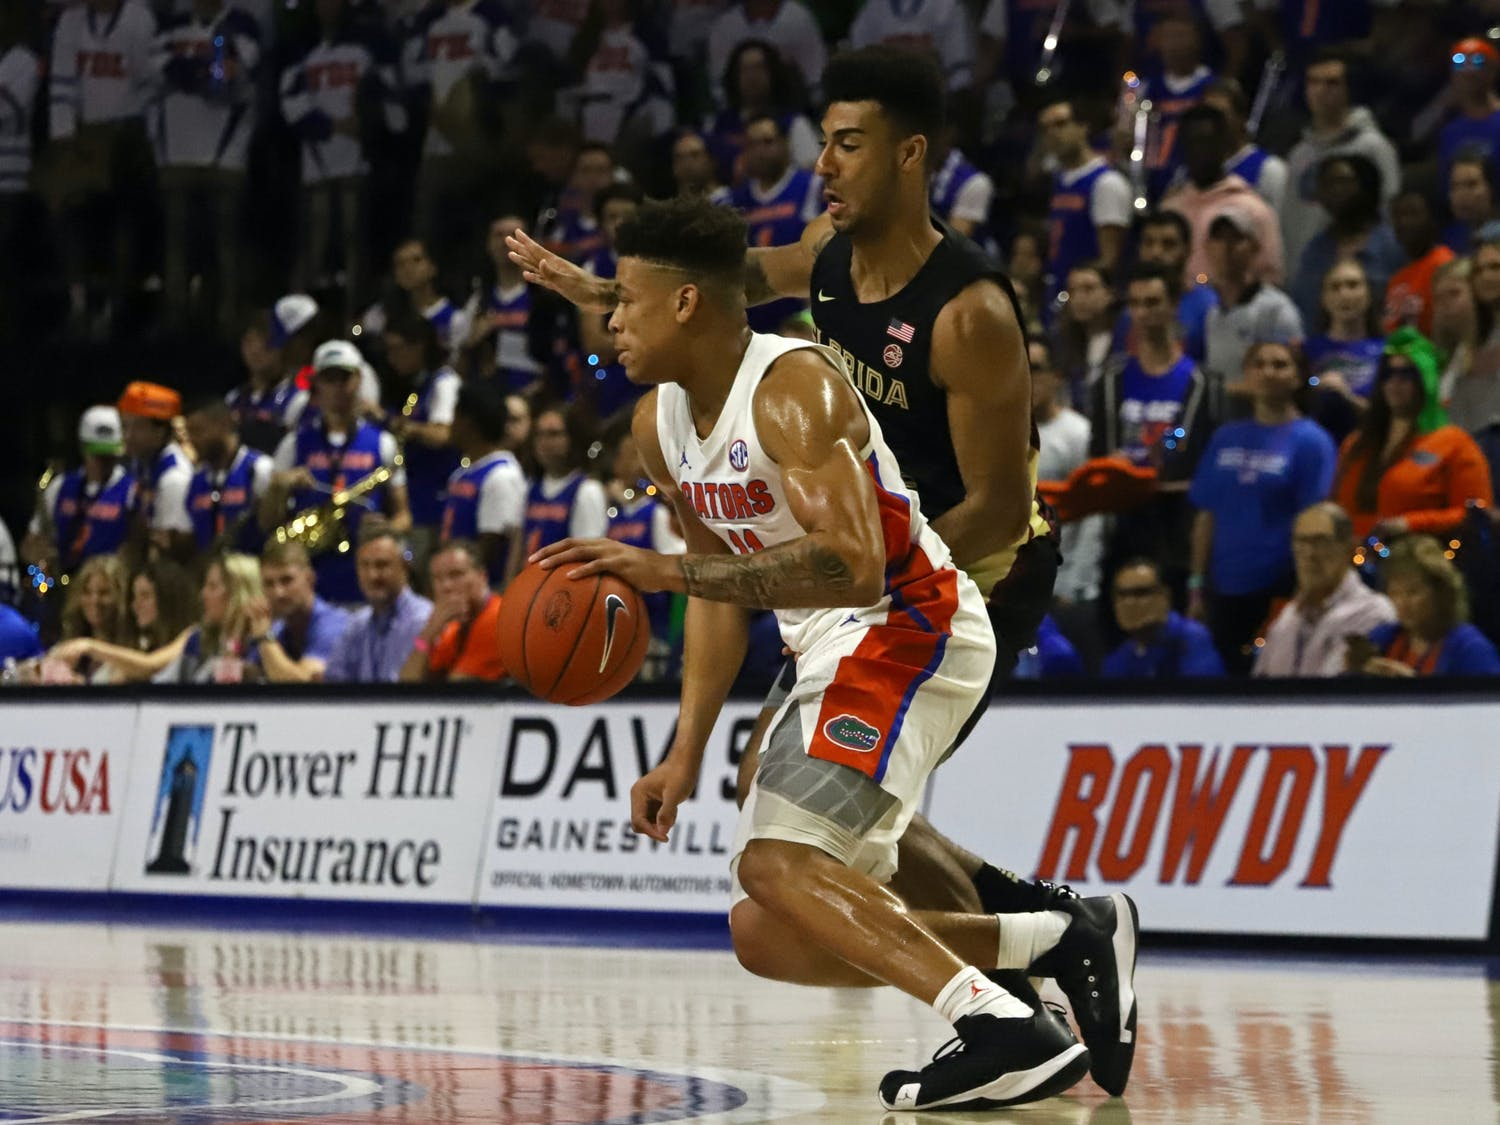 Gators forward Keyontae Johnson at Florida's game against FSU in 2019. Johnson is currently at Tallahassee Memorial Hospital. Coach Mike White is staying behind with his player, while the rest of the team heads back to Gainesville.